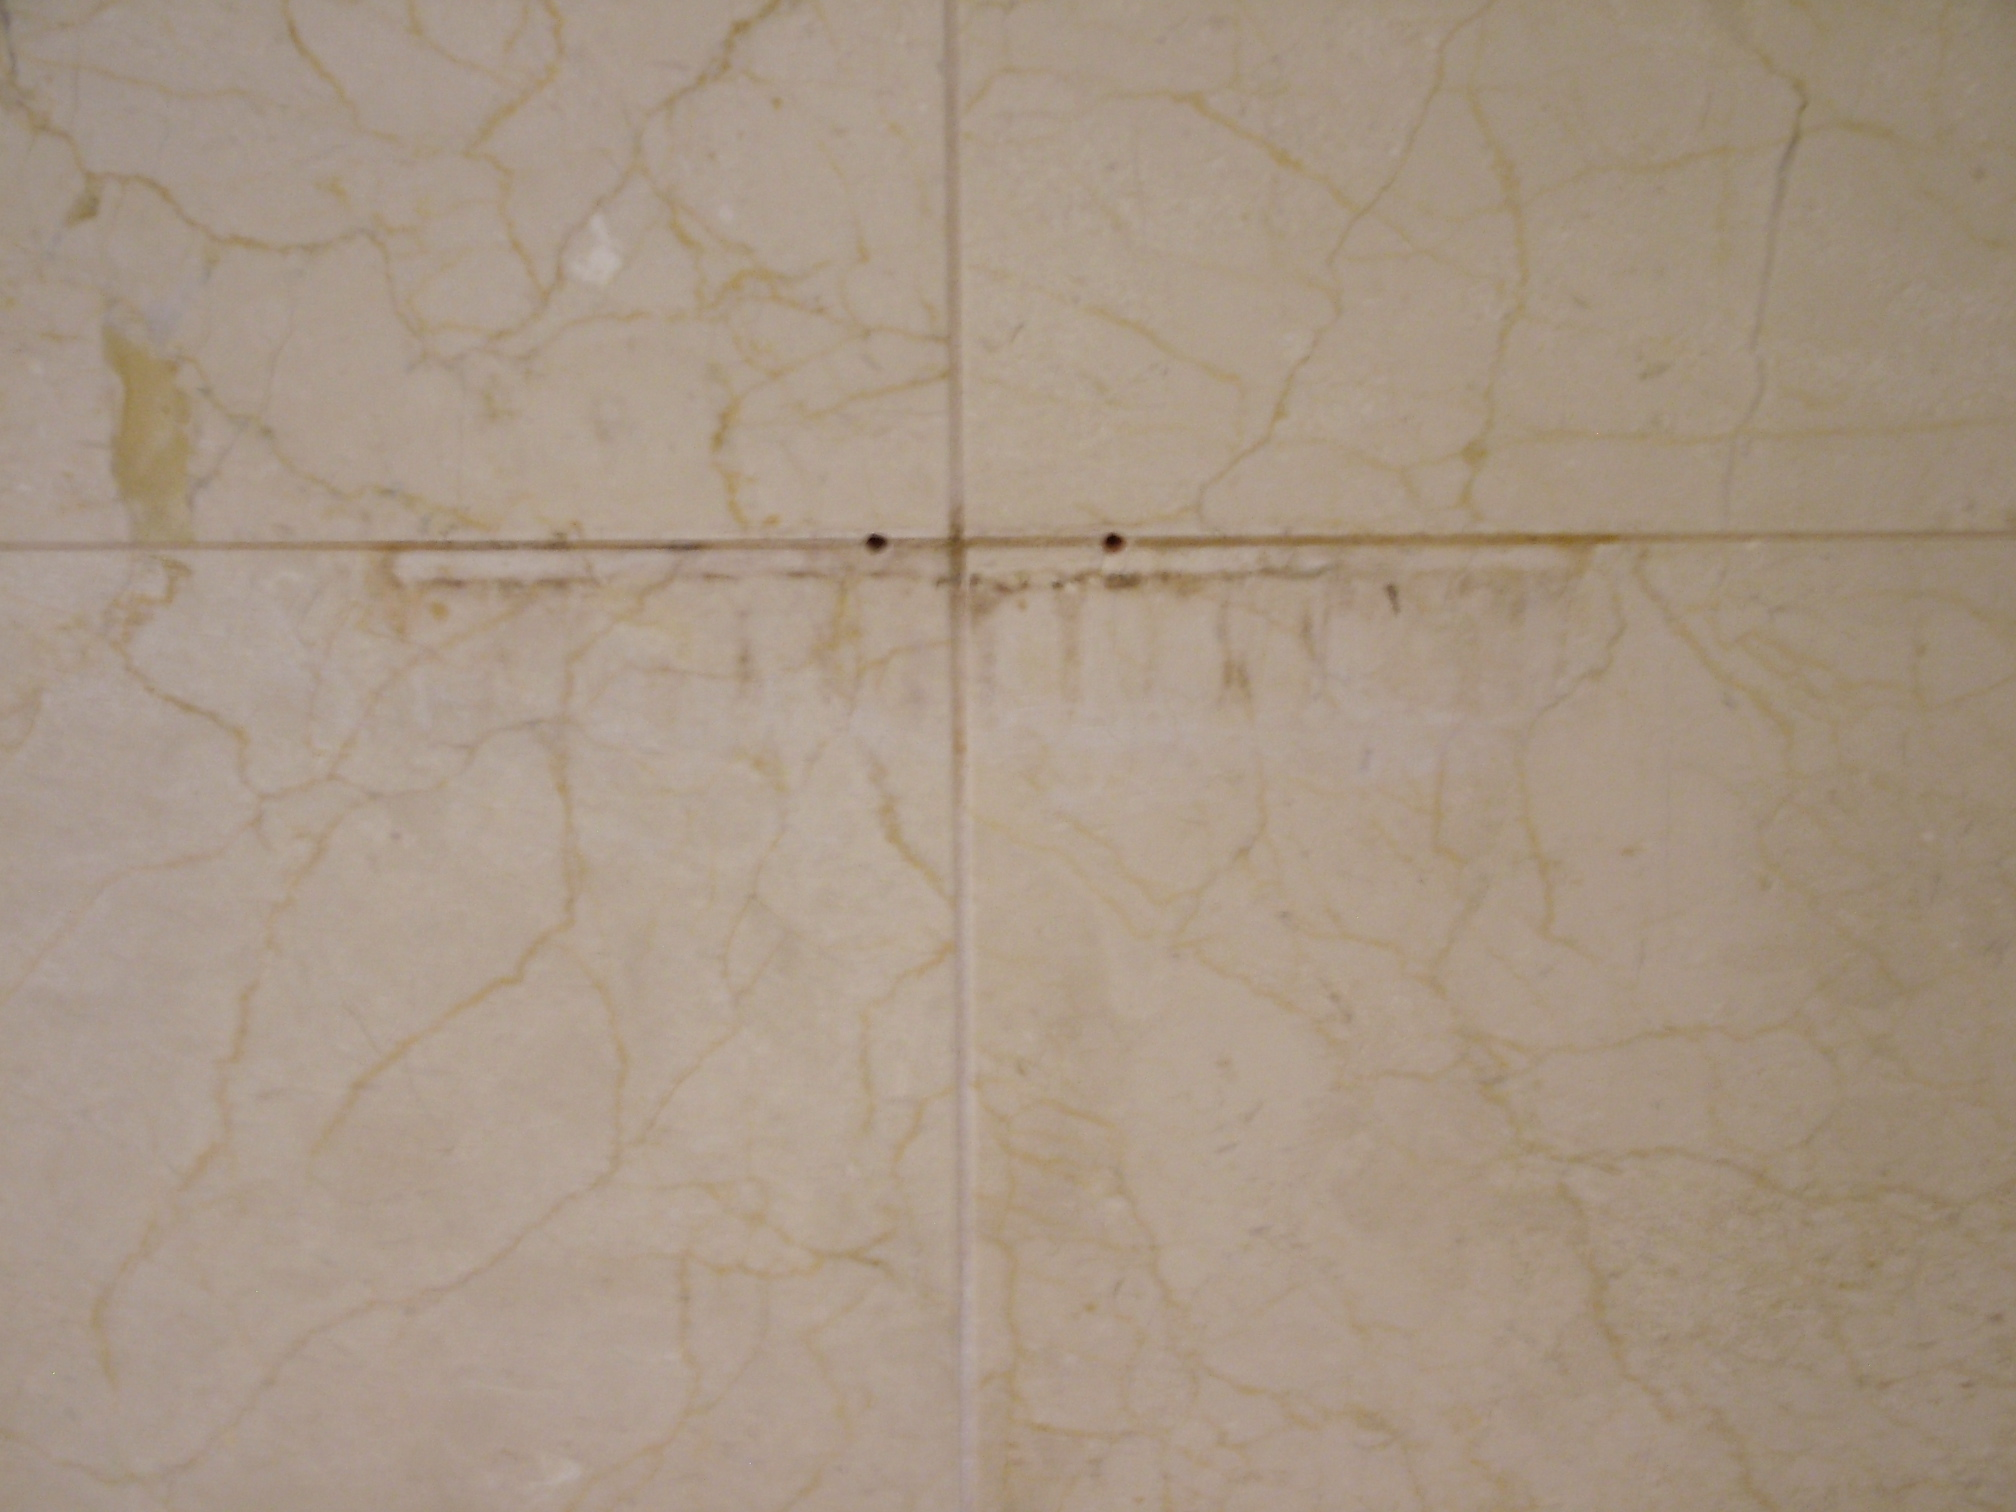 lustre ltd specialists in marble cleaning polishing and tile grout restoration